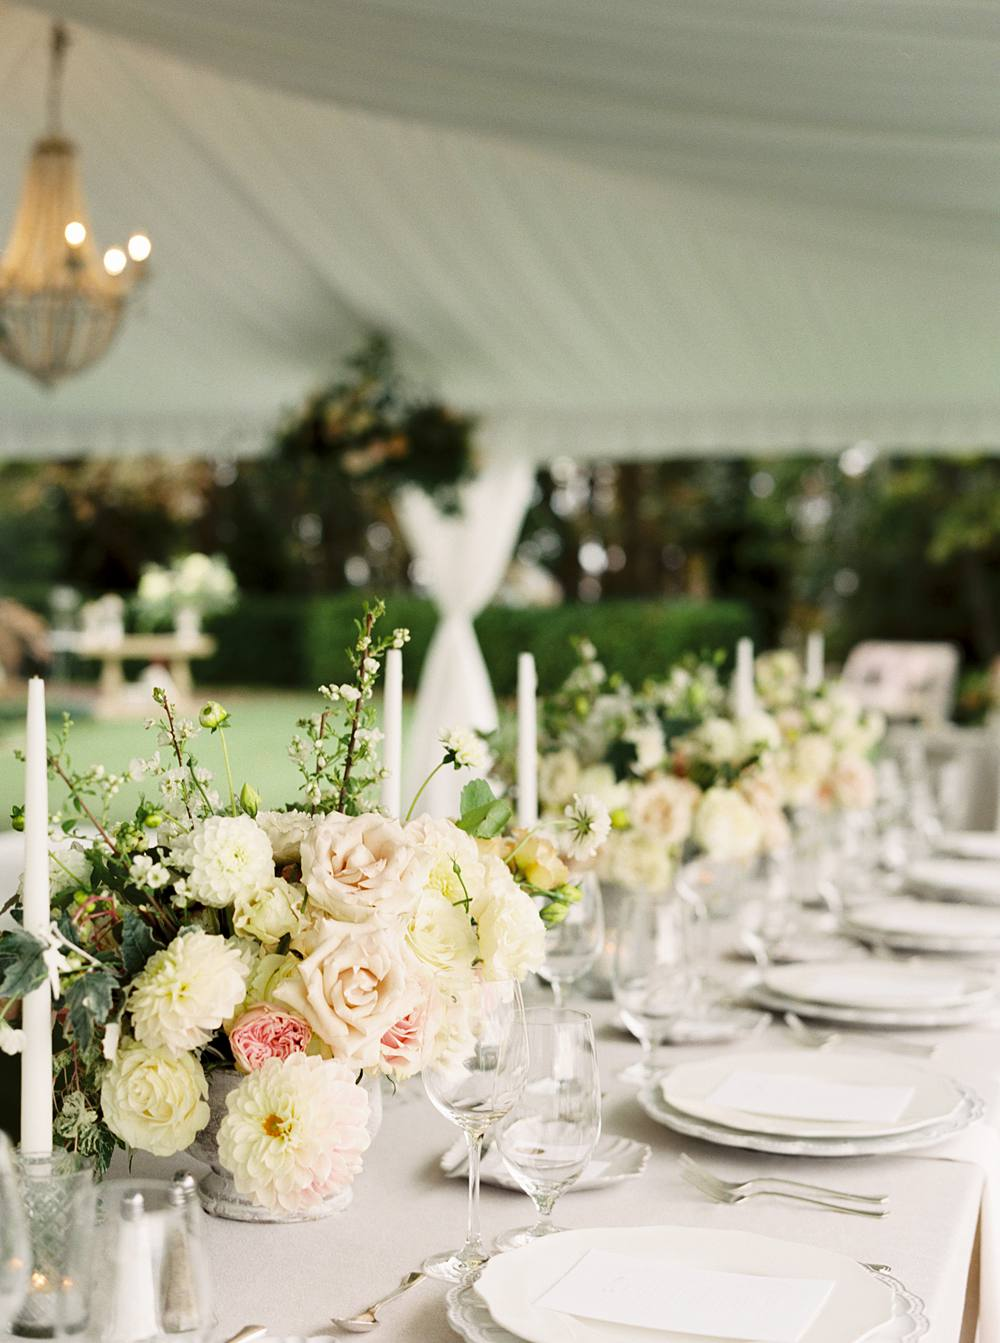 Shot of tented wedding reception highlighting the blush and white floral arrangements and placesettings.